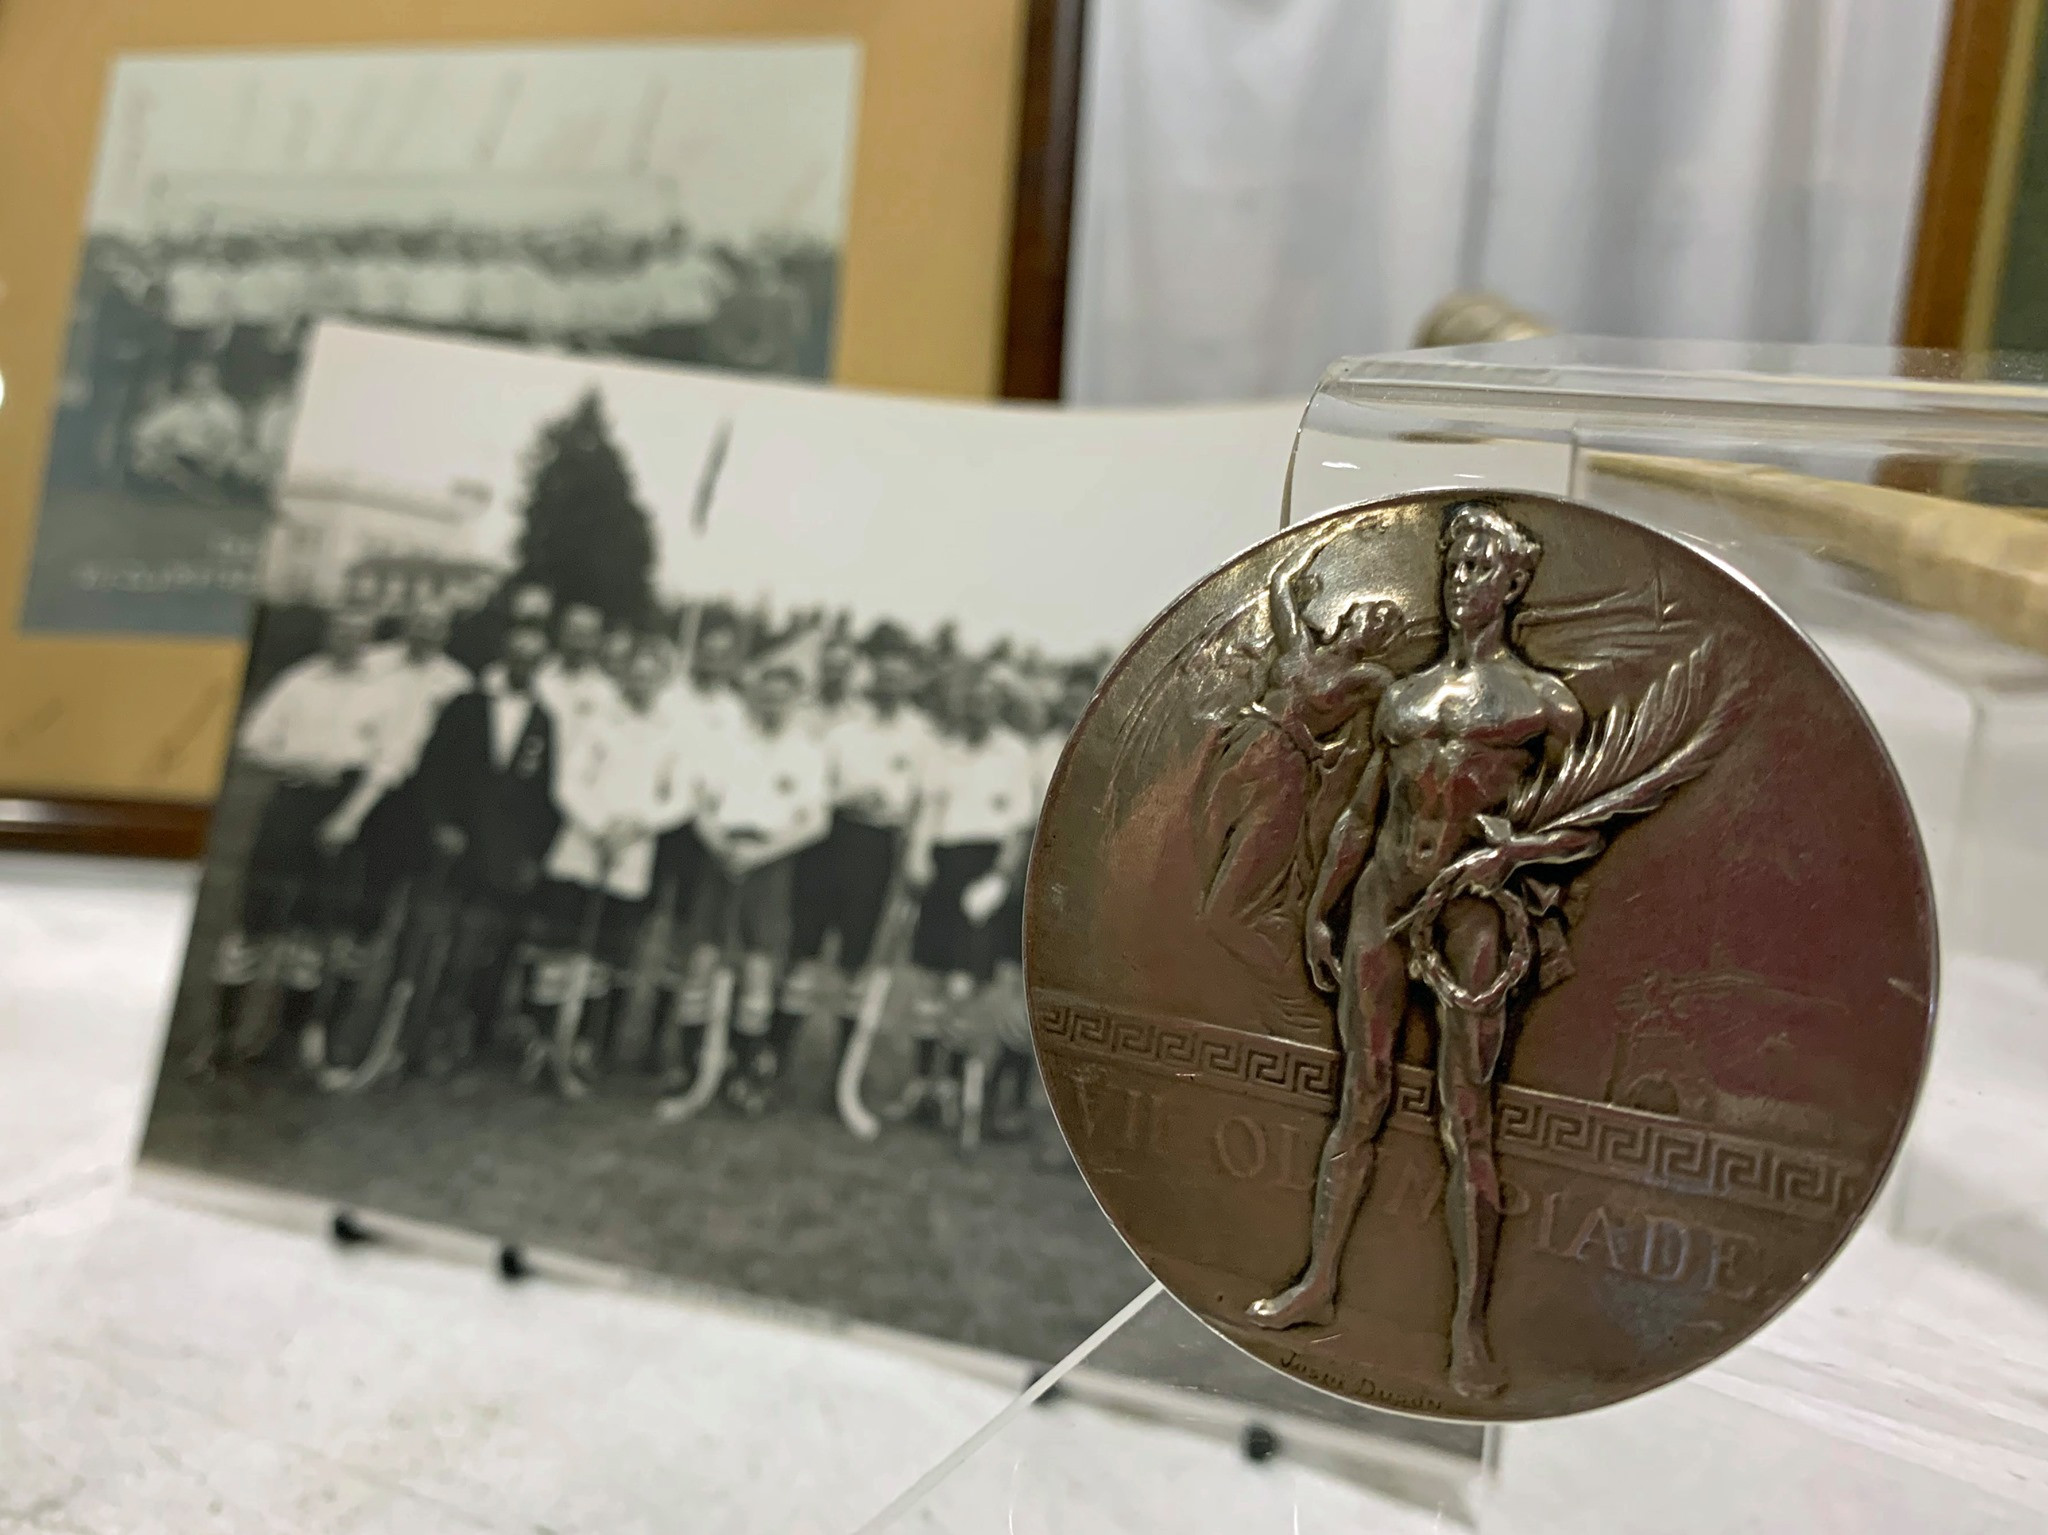 Antwerp 1920 gold medal loaned to The Hockey Museum to celebrate centenary of Britain's victory